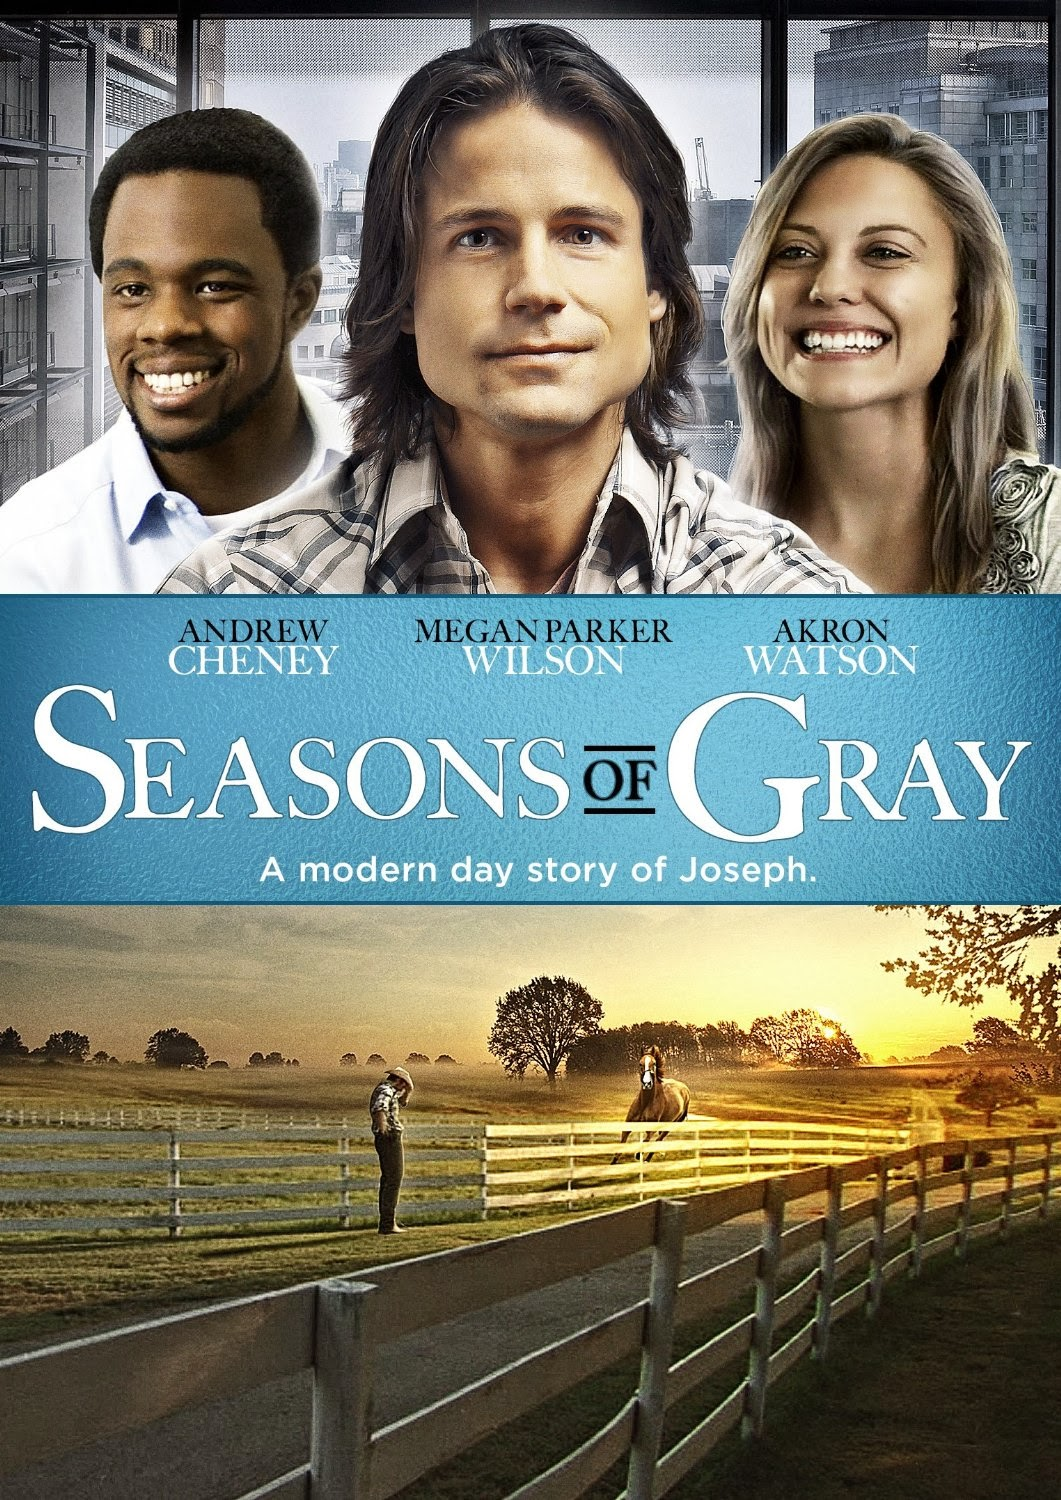 Enter to win Seasons of Gray DVD. Ends 2/21.